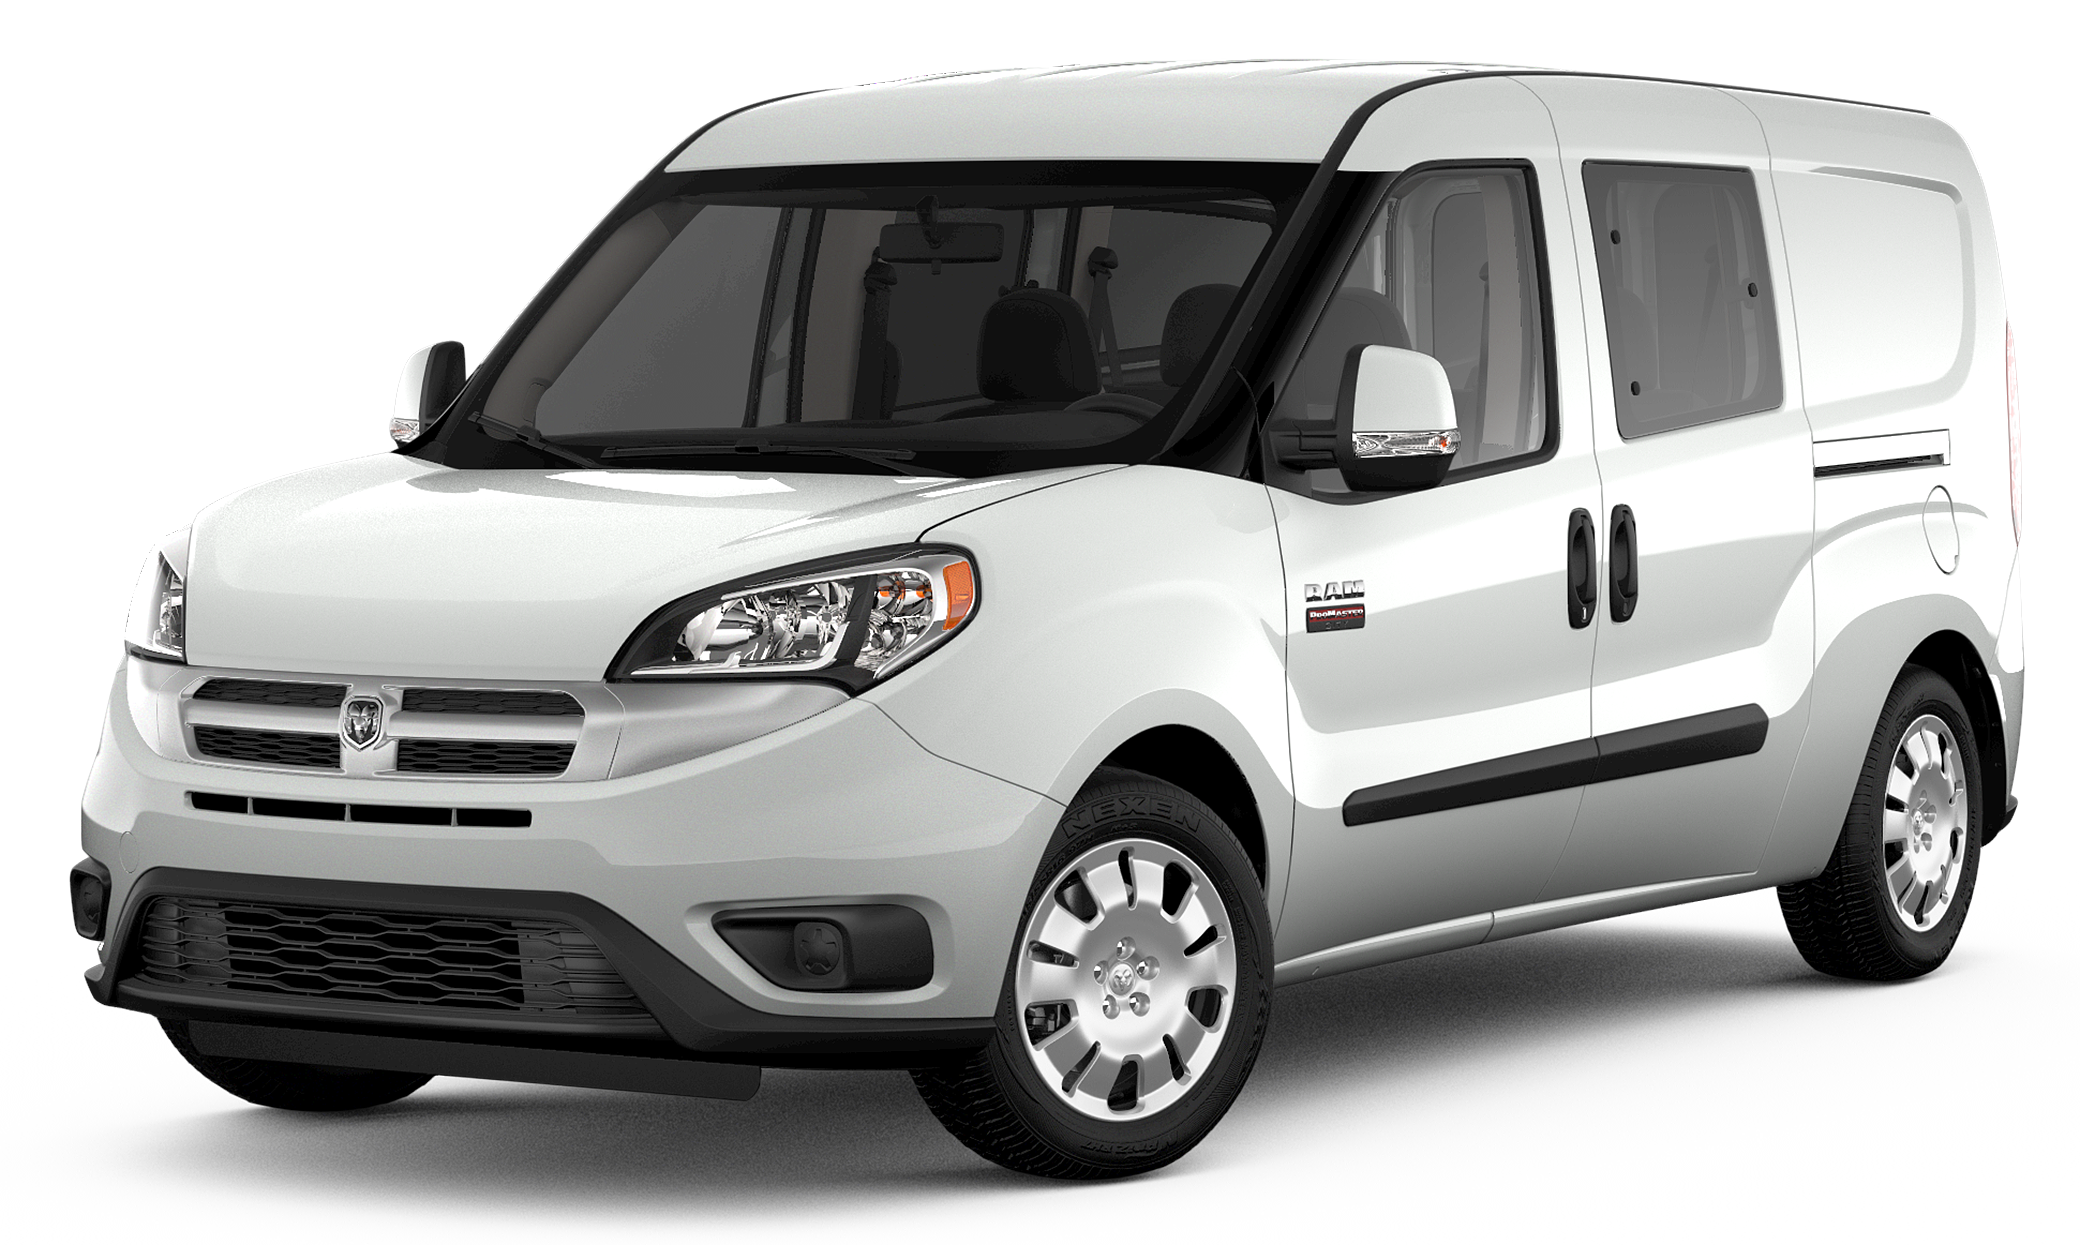 2018 Ram ProMaster City Incentives Specials & fers in McKinney TX